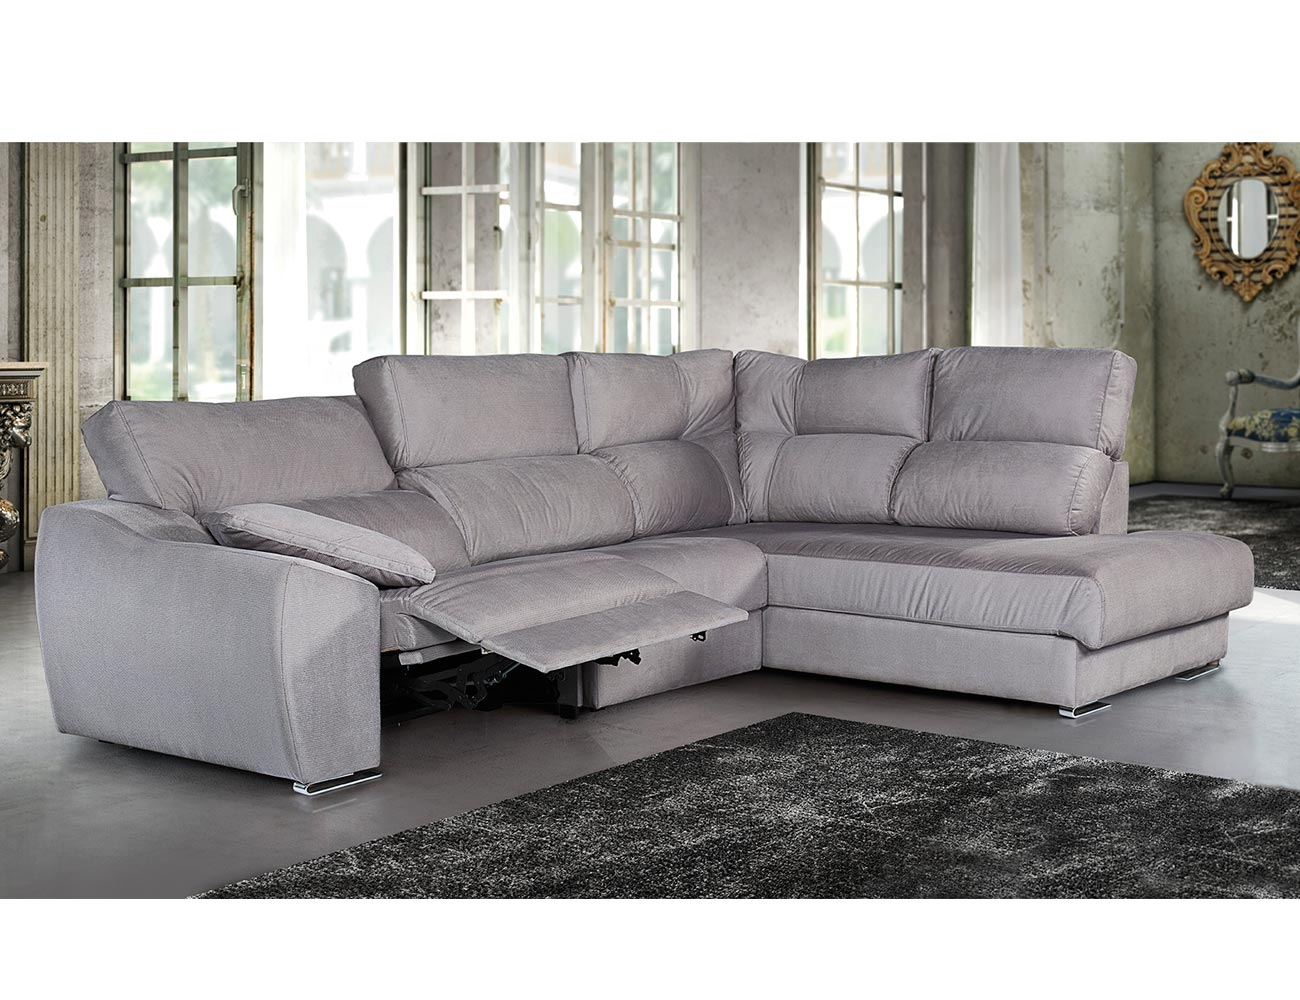 Sof 3 plazas cheiselonguen rinconera relax electrico for Sofa 1 plaza chaise longue